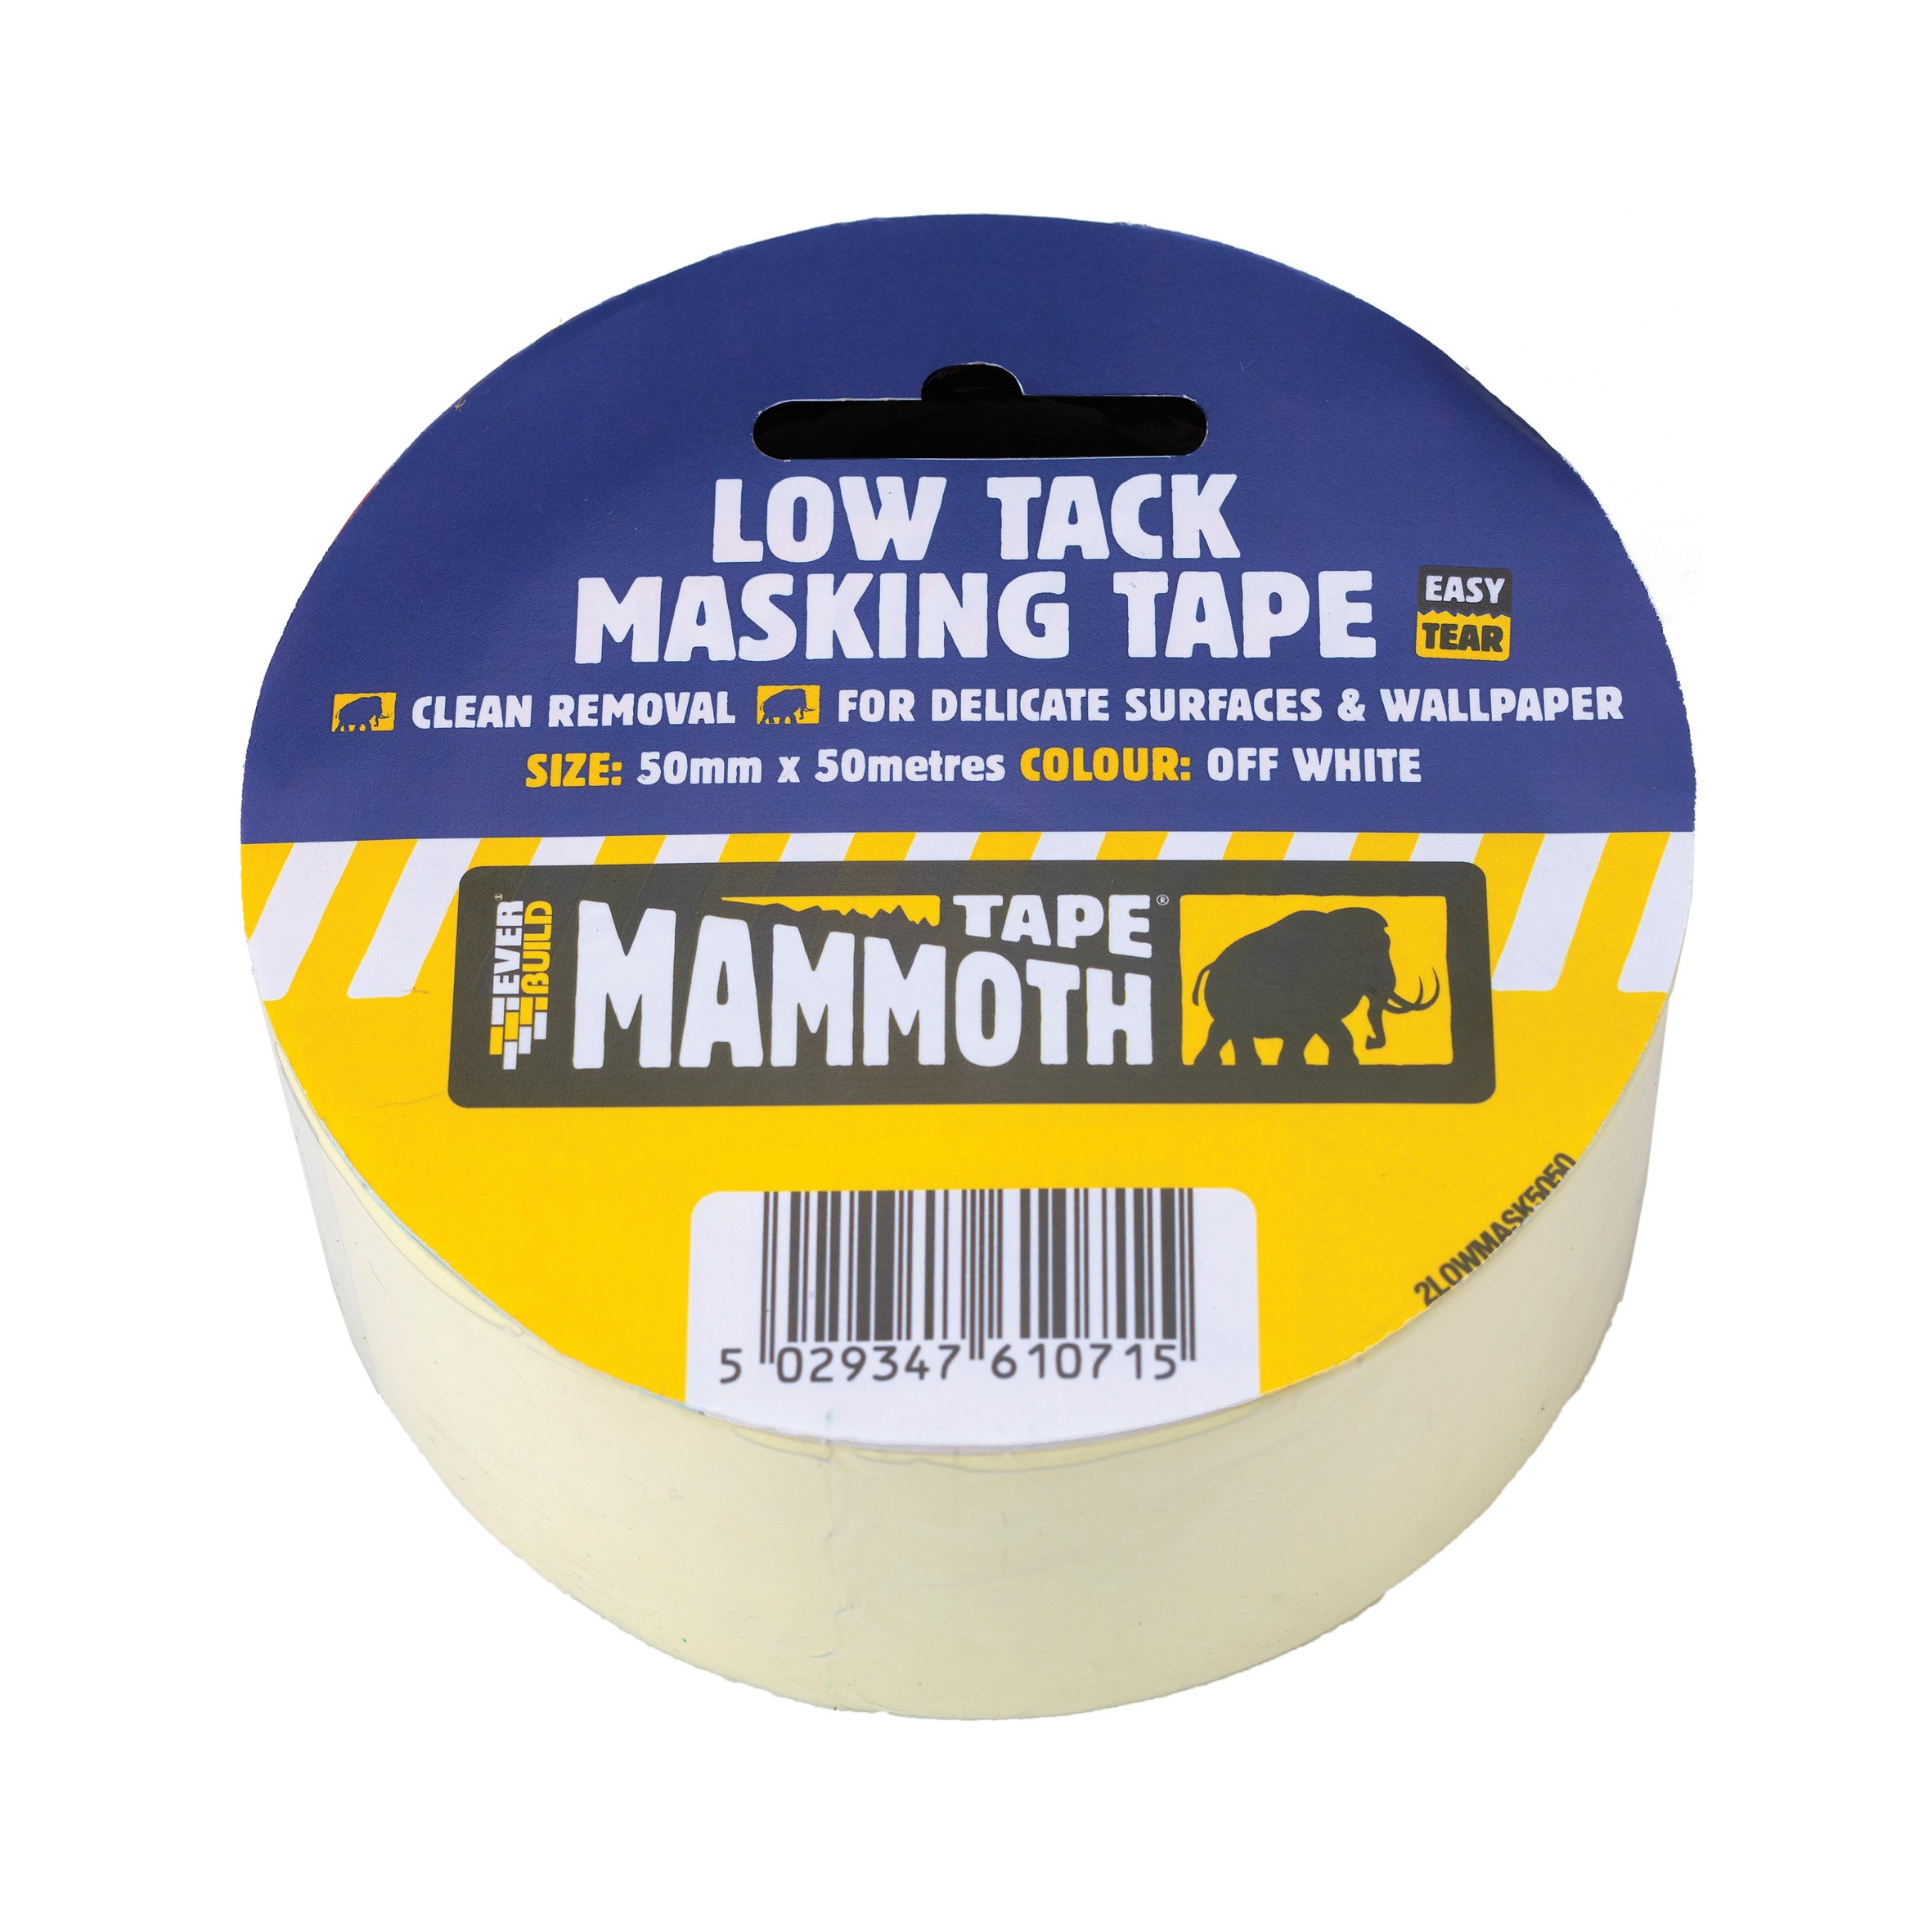 Everbuild Low Tack Masking Tape - 25mm x 25m